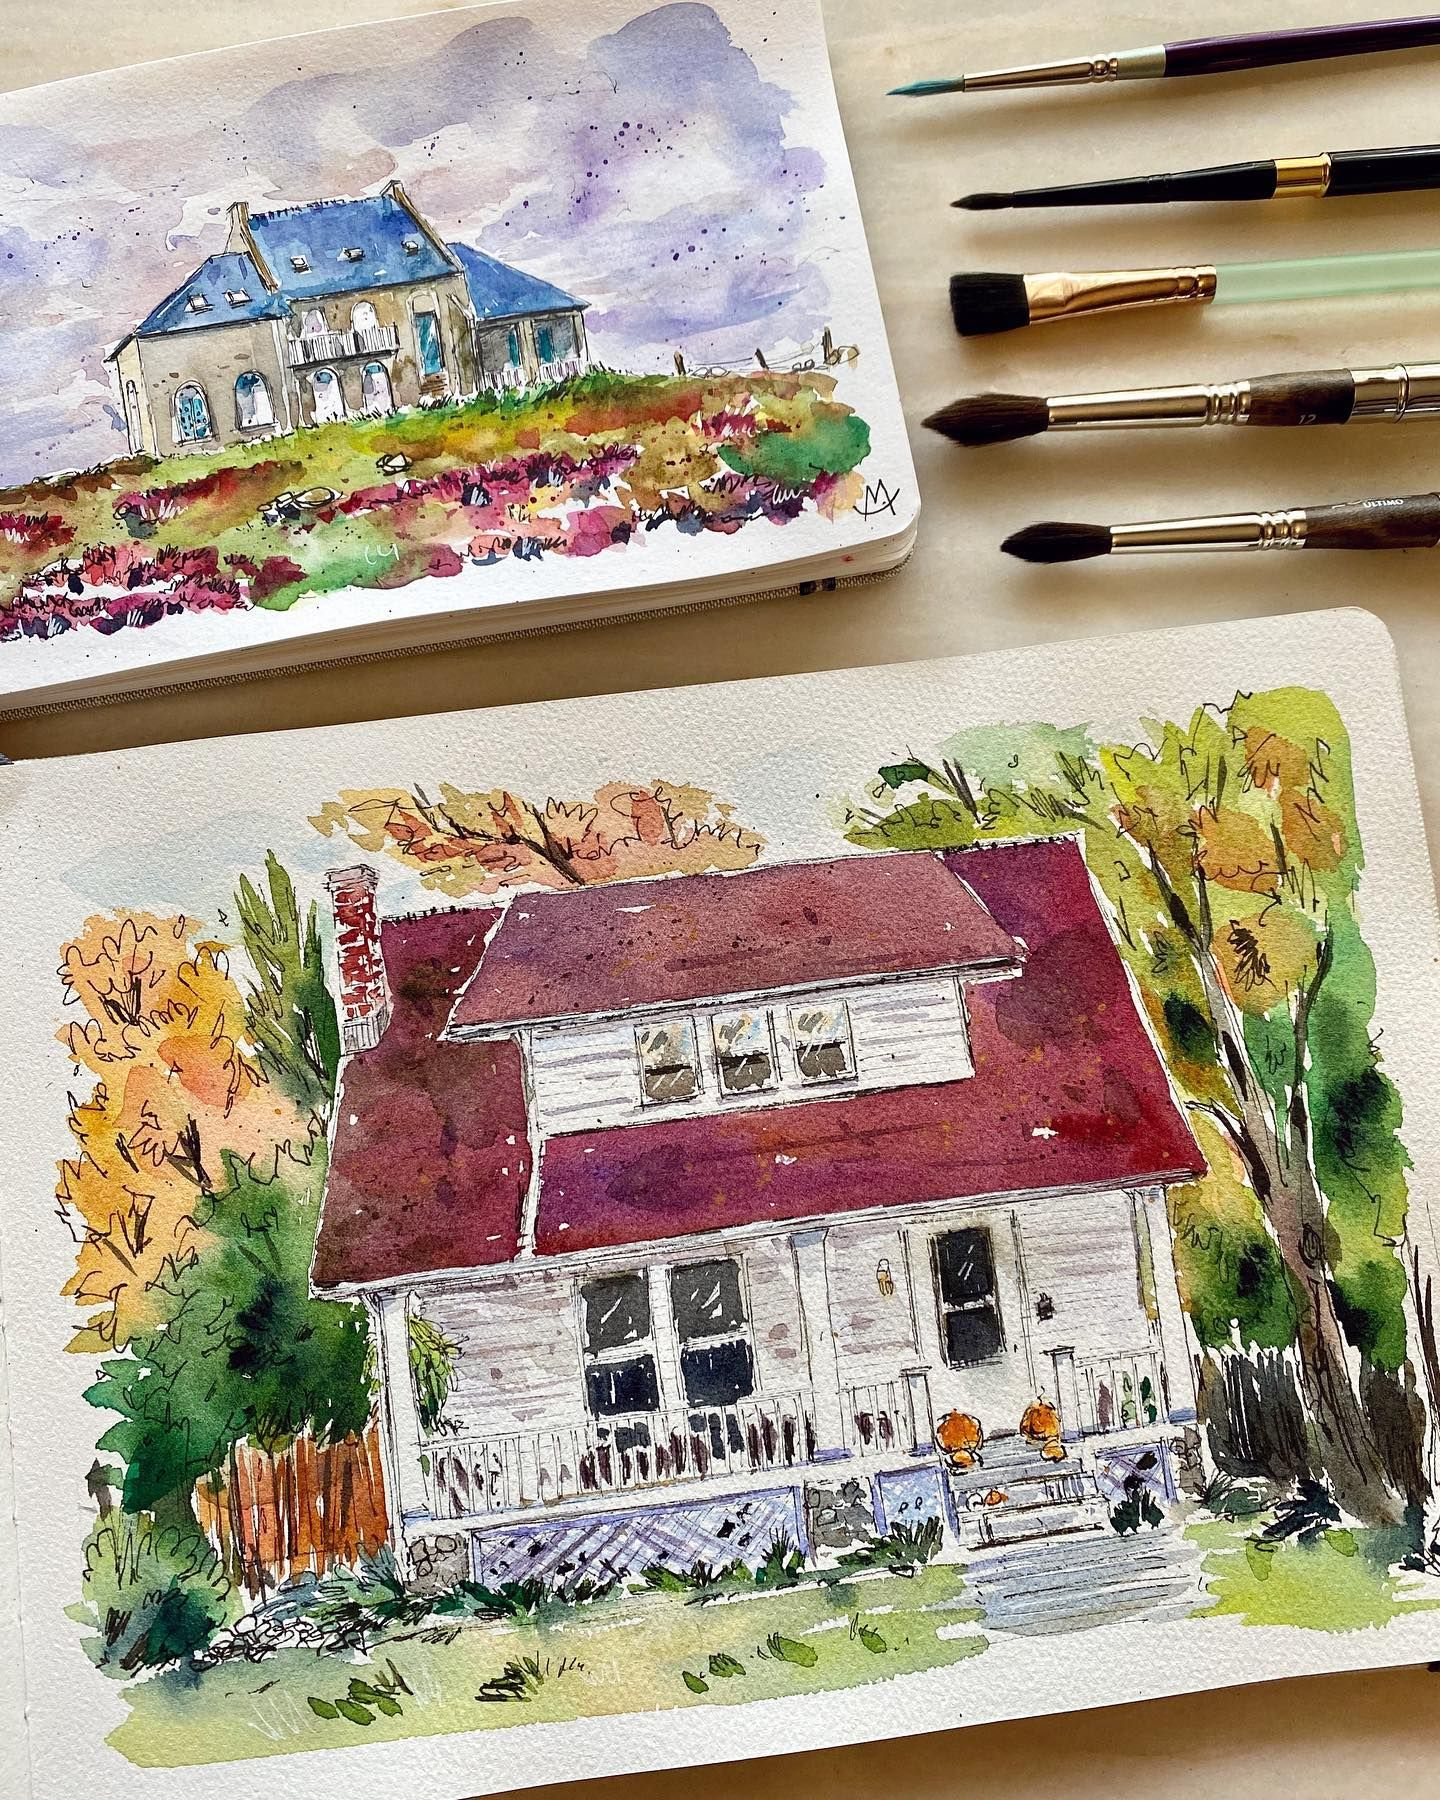 Red or blue roof?         #watercolorsketch #watercolorillustration #watercolorhouses  #drawing#sketch#urbansketch#urbansketching#urban#architektura#art#artwork#illust#painting #ink#landscape#staysafestayhome